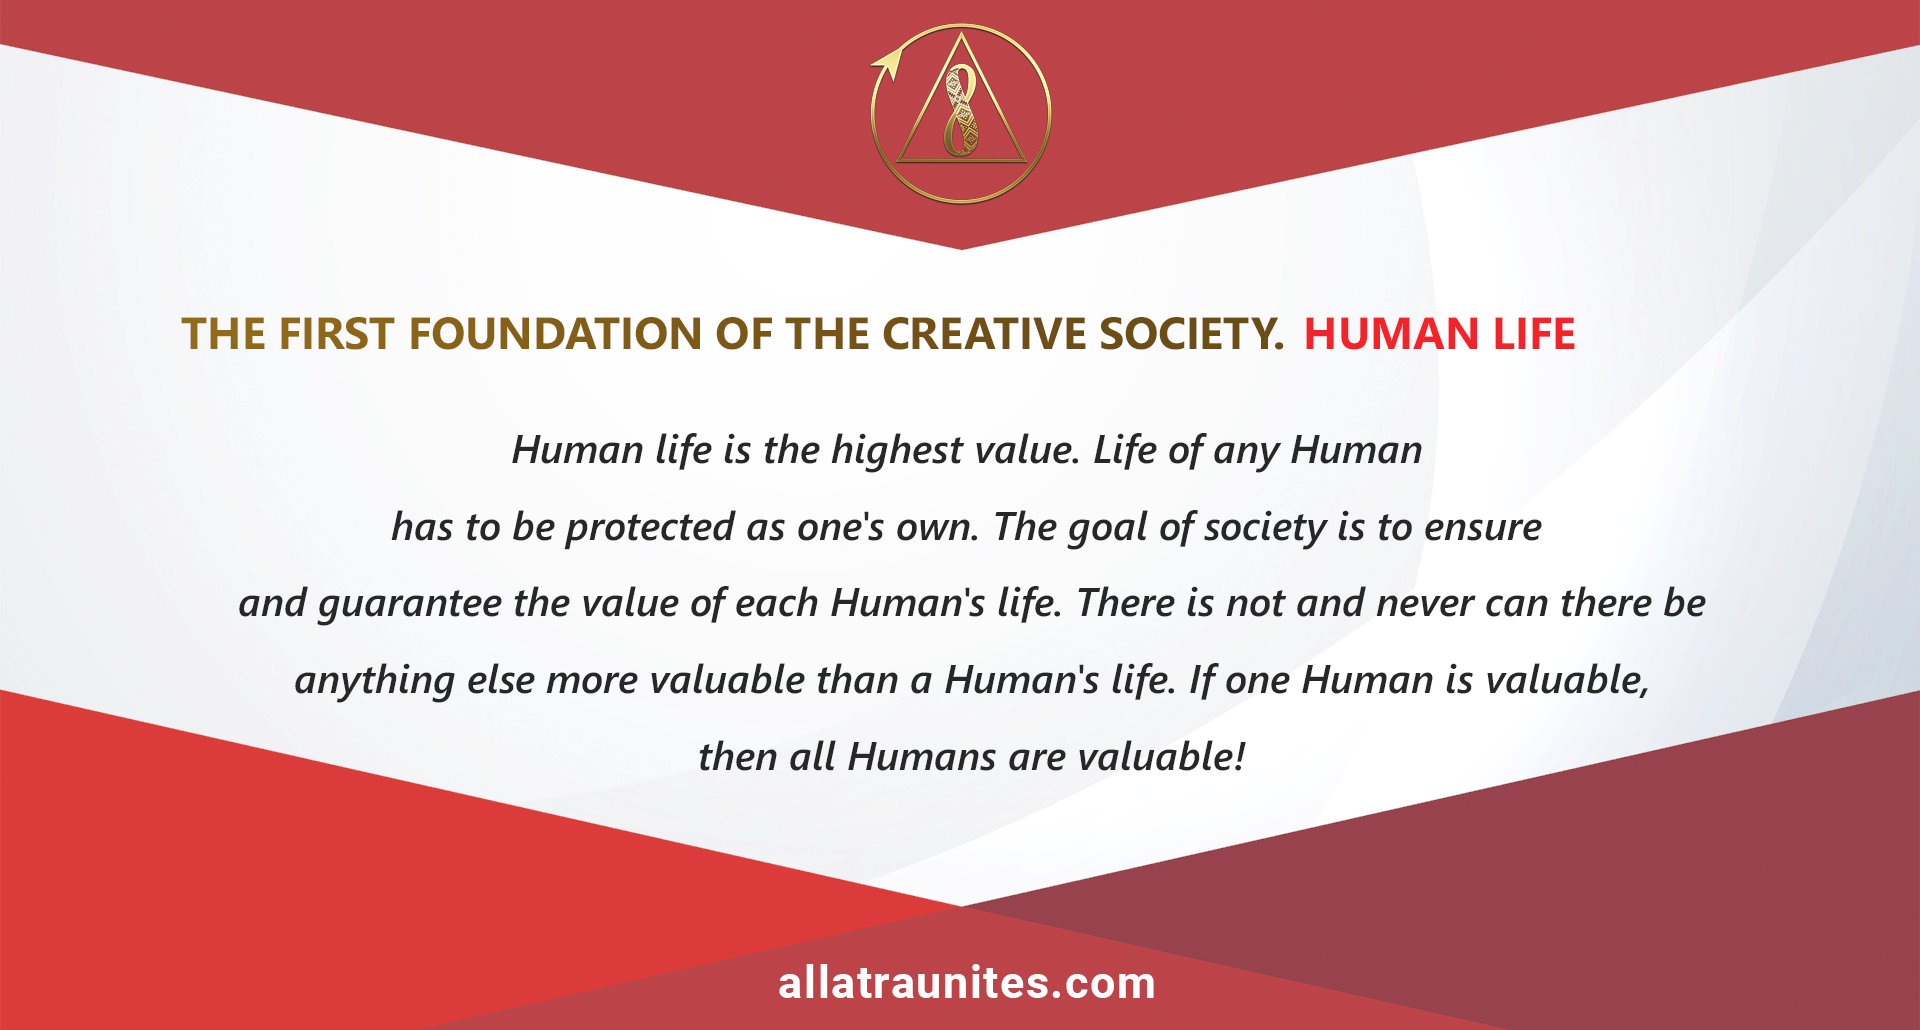 The first foundation of the Creative Society